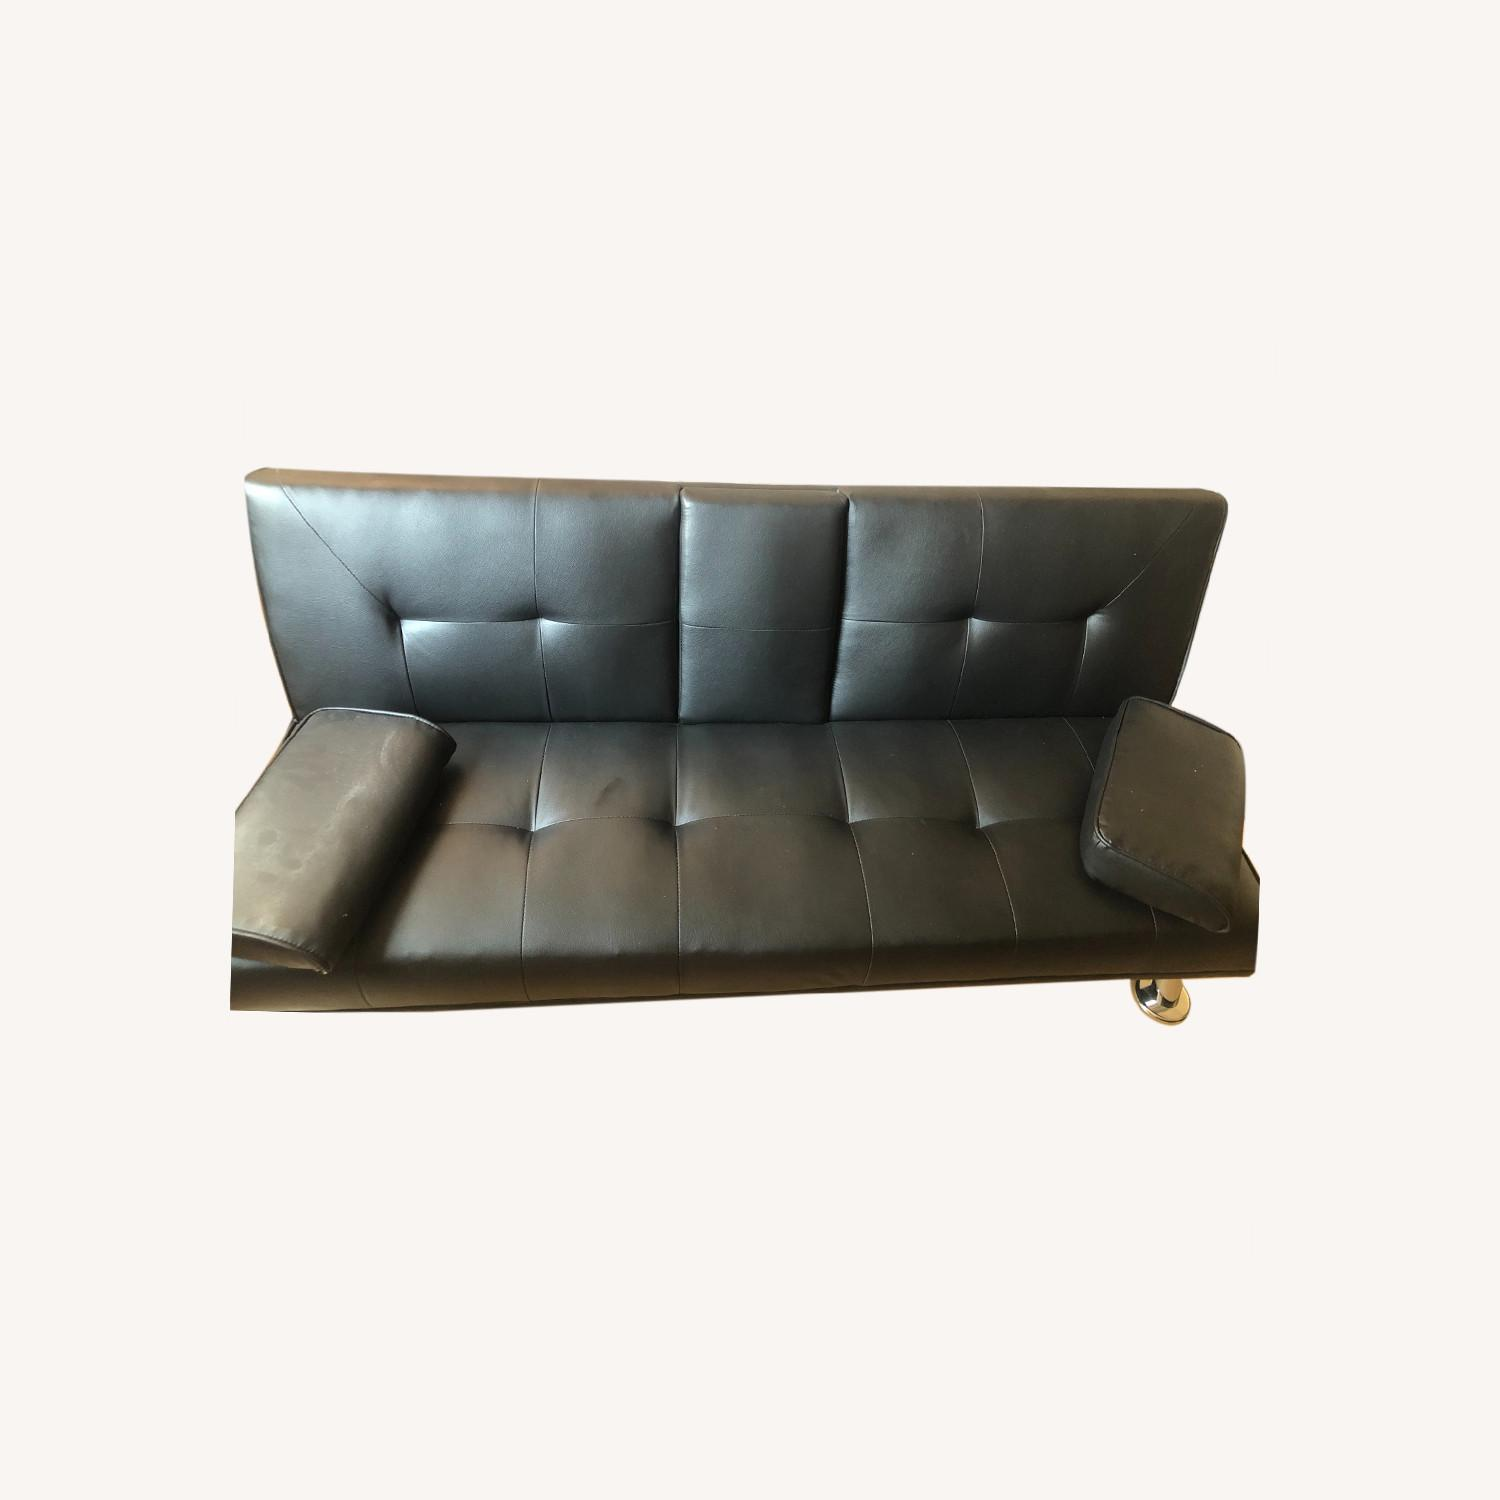 Wayfair Faux Leather Sofa Bed - Twin - image-0